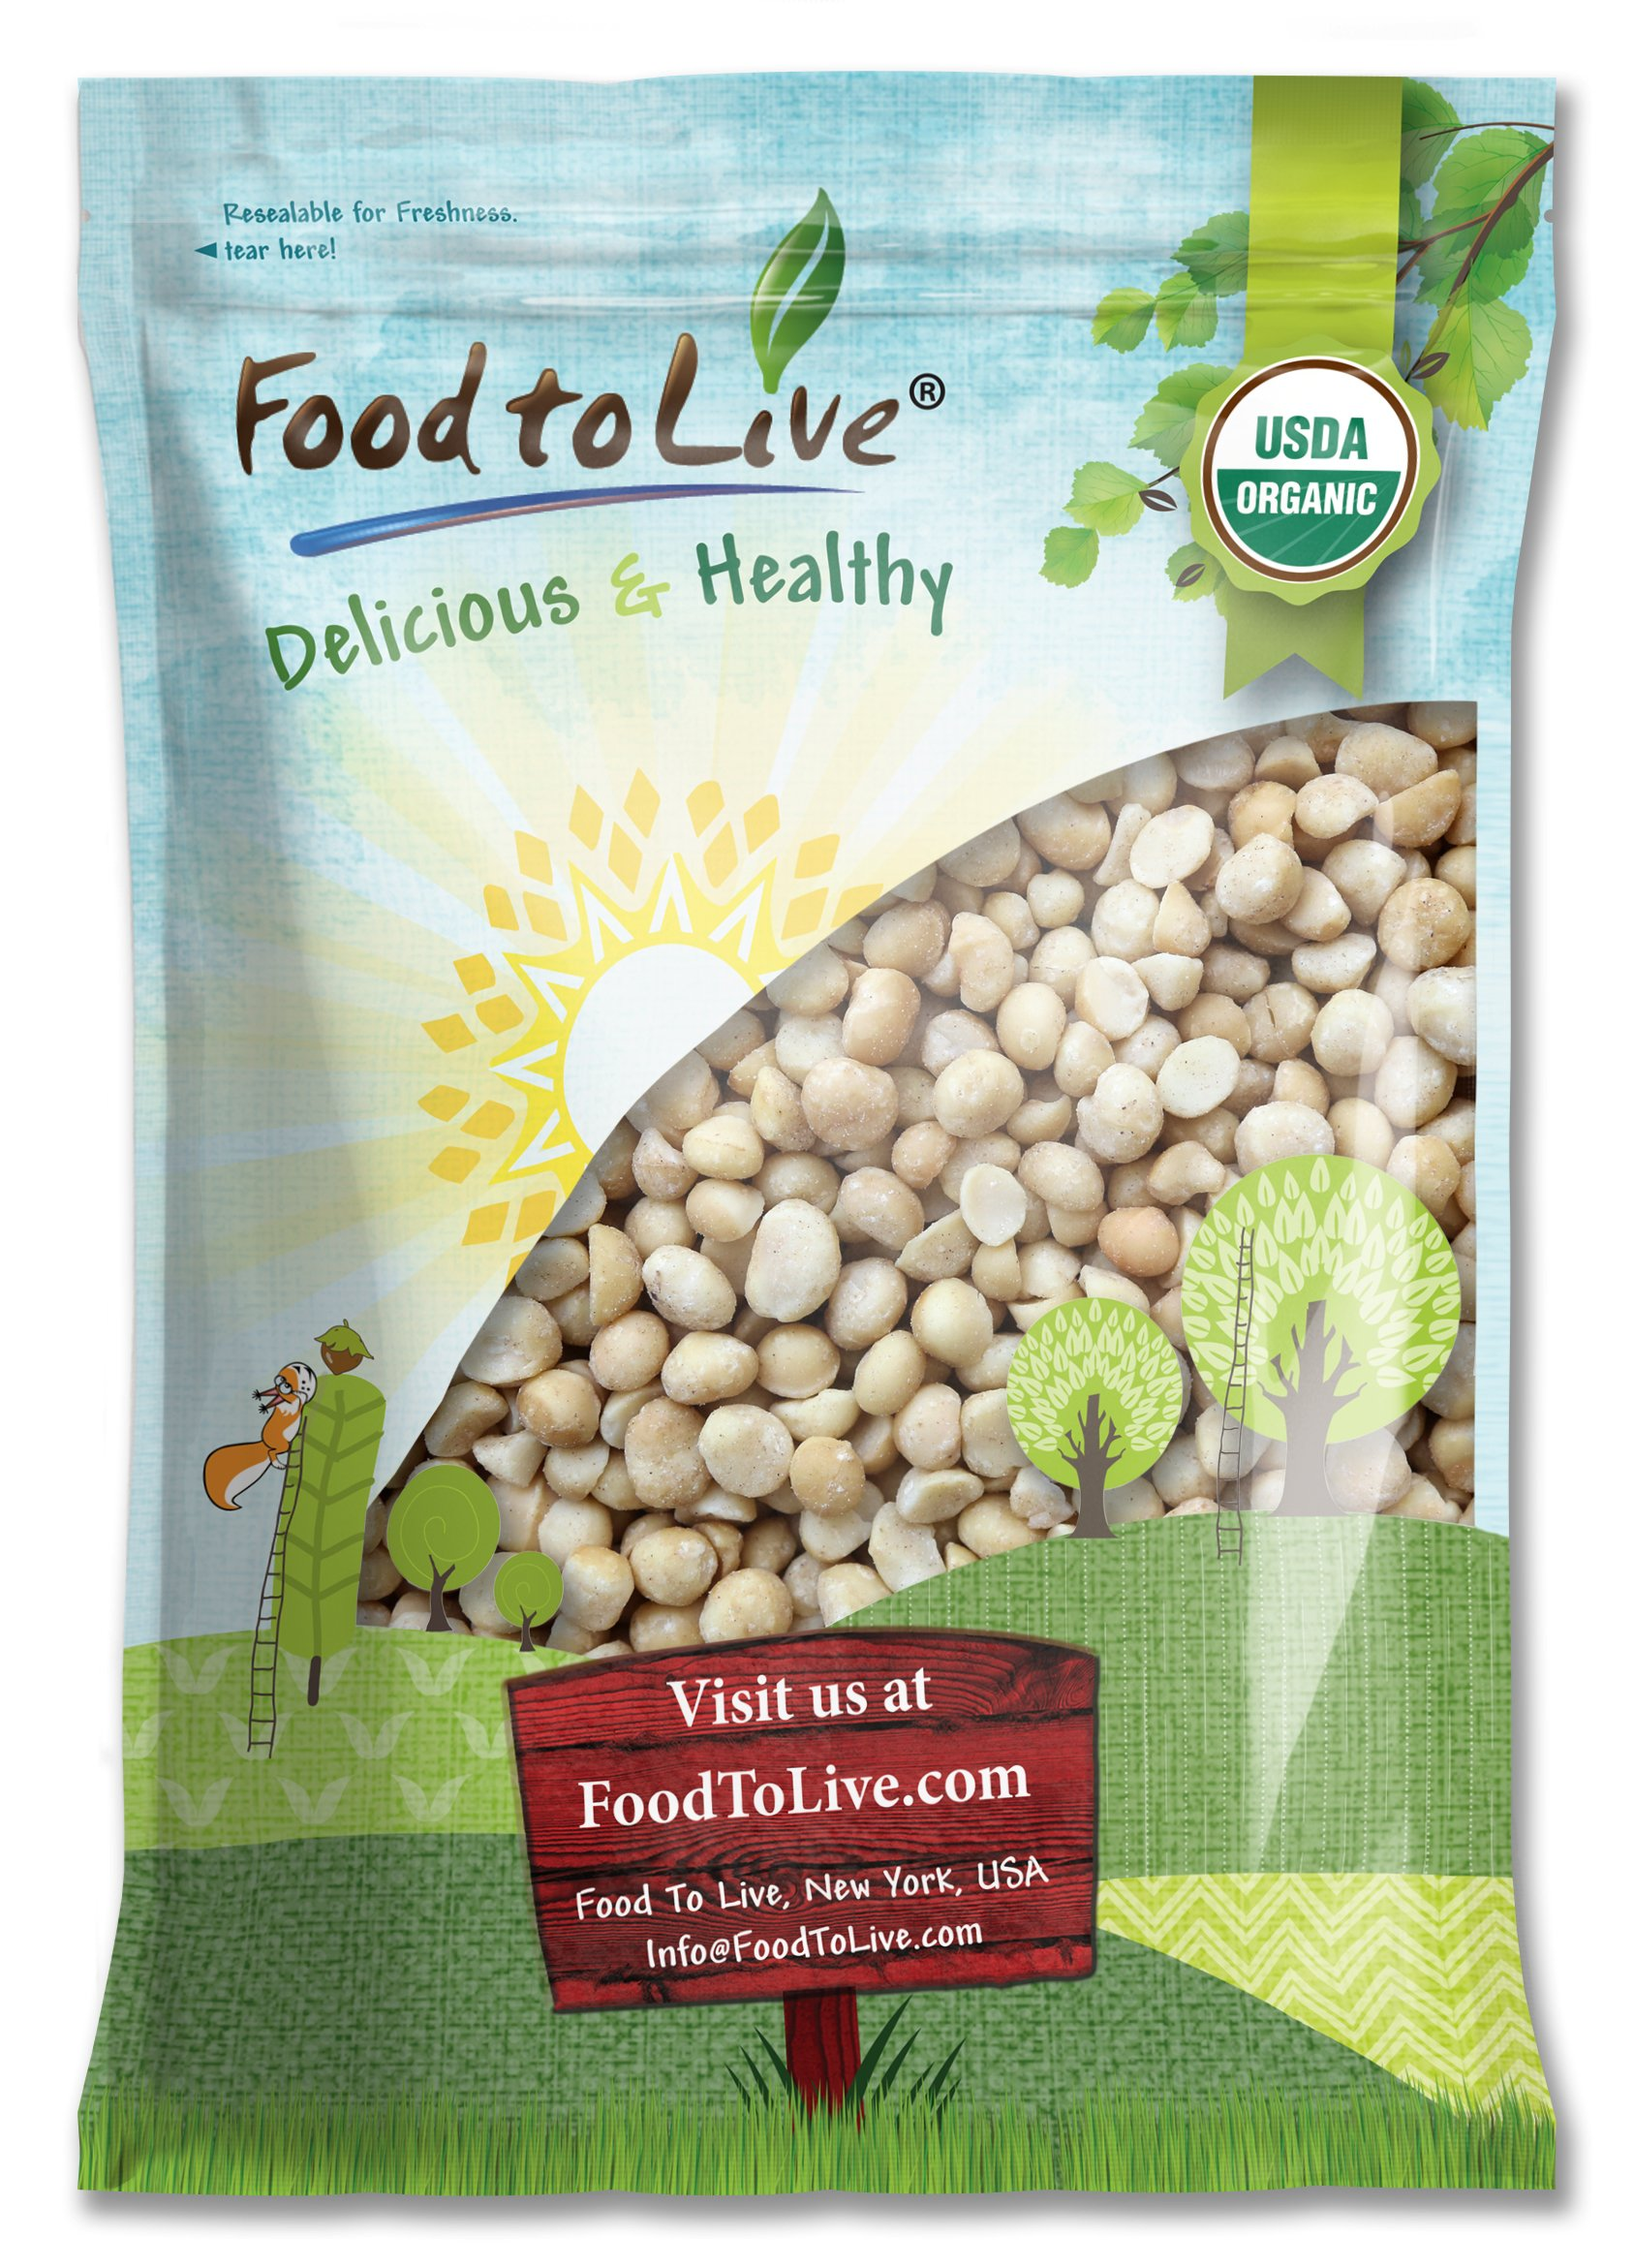 Organic Macadamia Nuts, 8 Pounds - Non-GMO, Kosher, Raw, Vegan by Food to Live